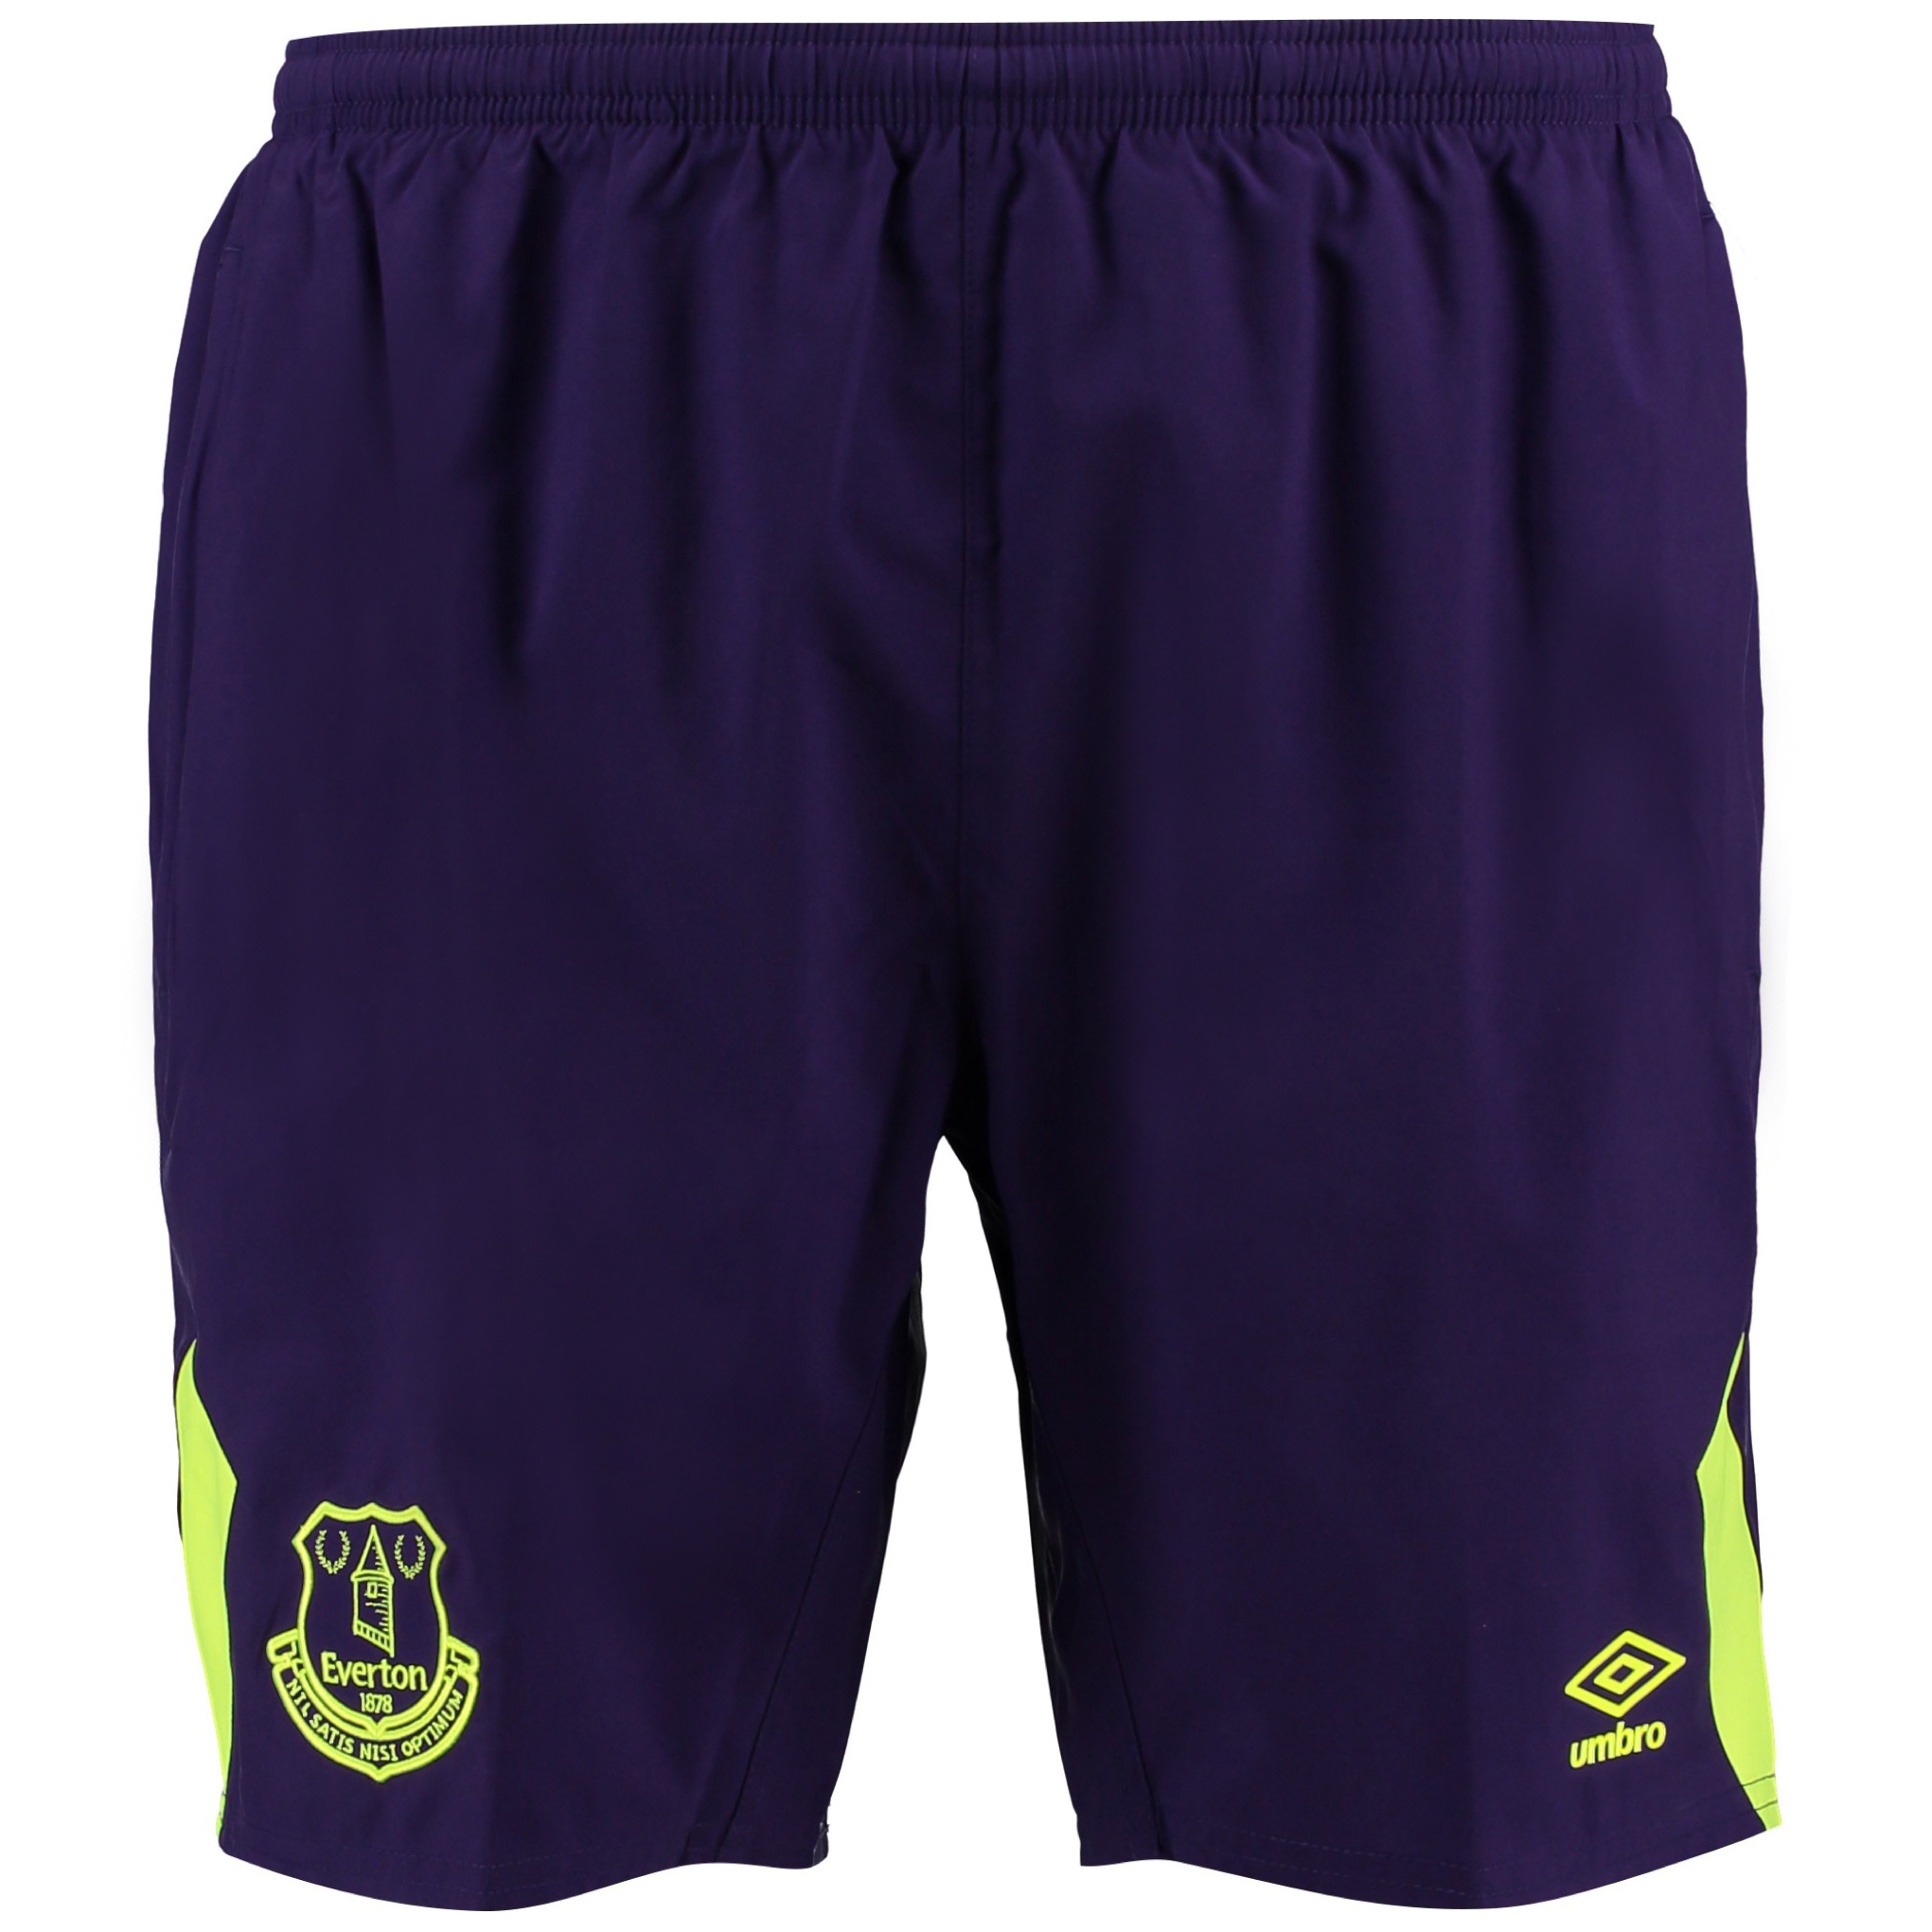 Everton Training Woven Short - Parachute Purple/Safety Yellow